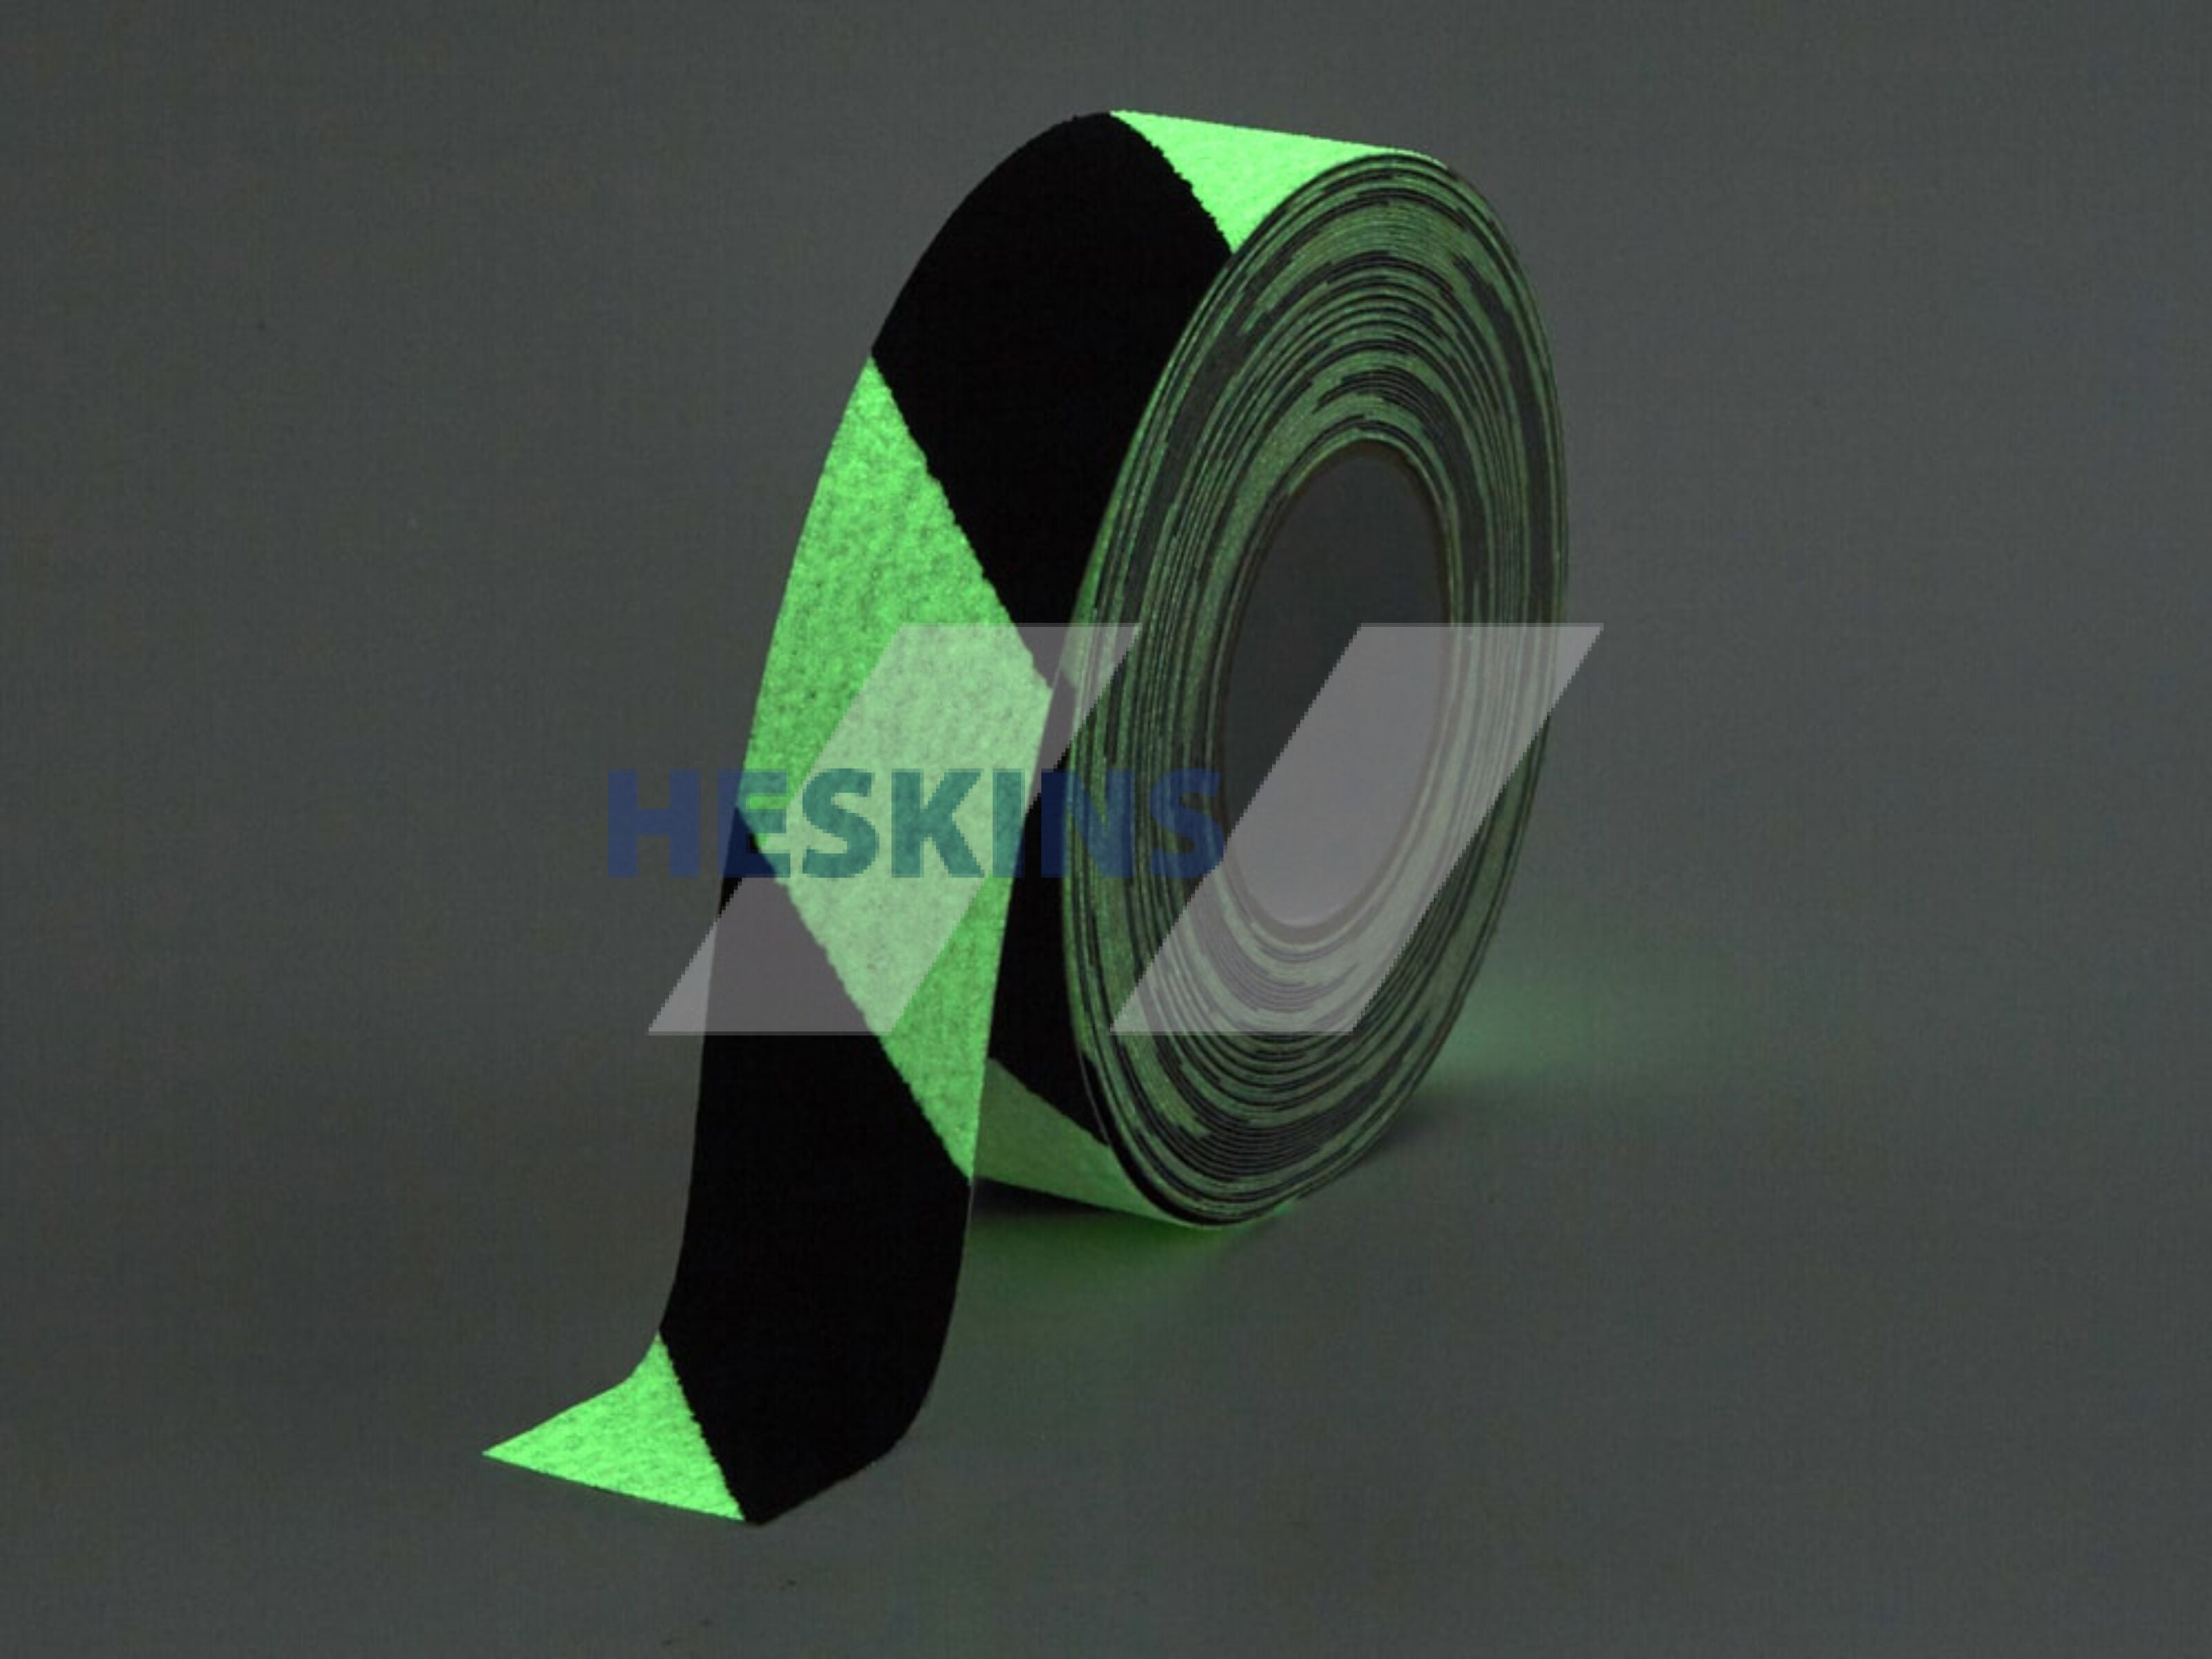 Heskins Safety Grip Hazard Glow in the Dark Anti Slip Tape - Multiple Options